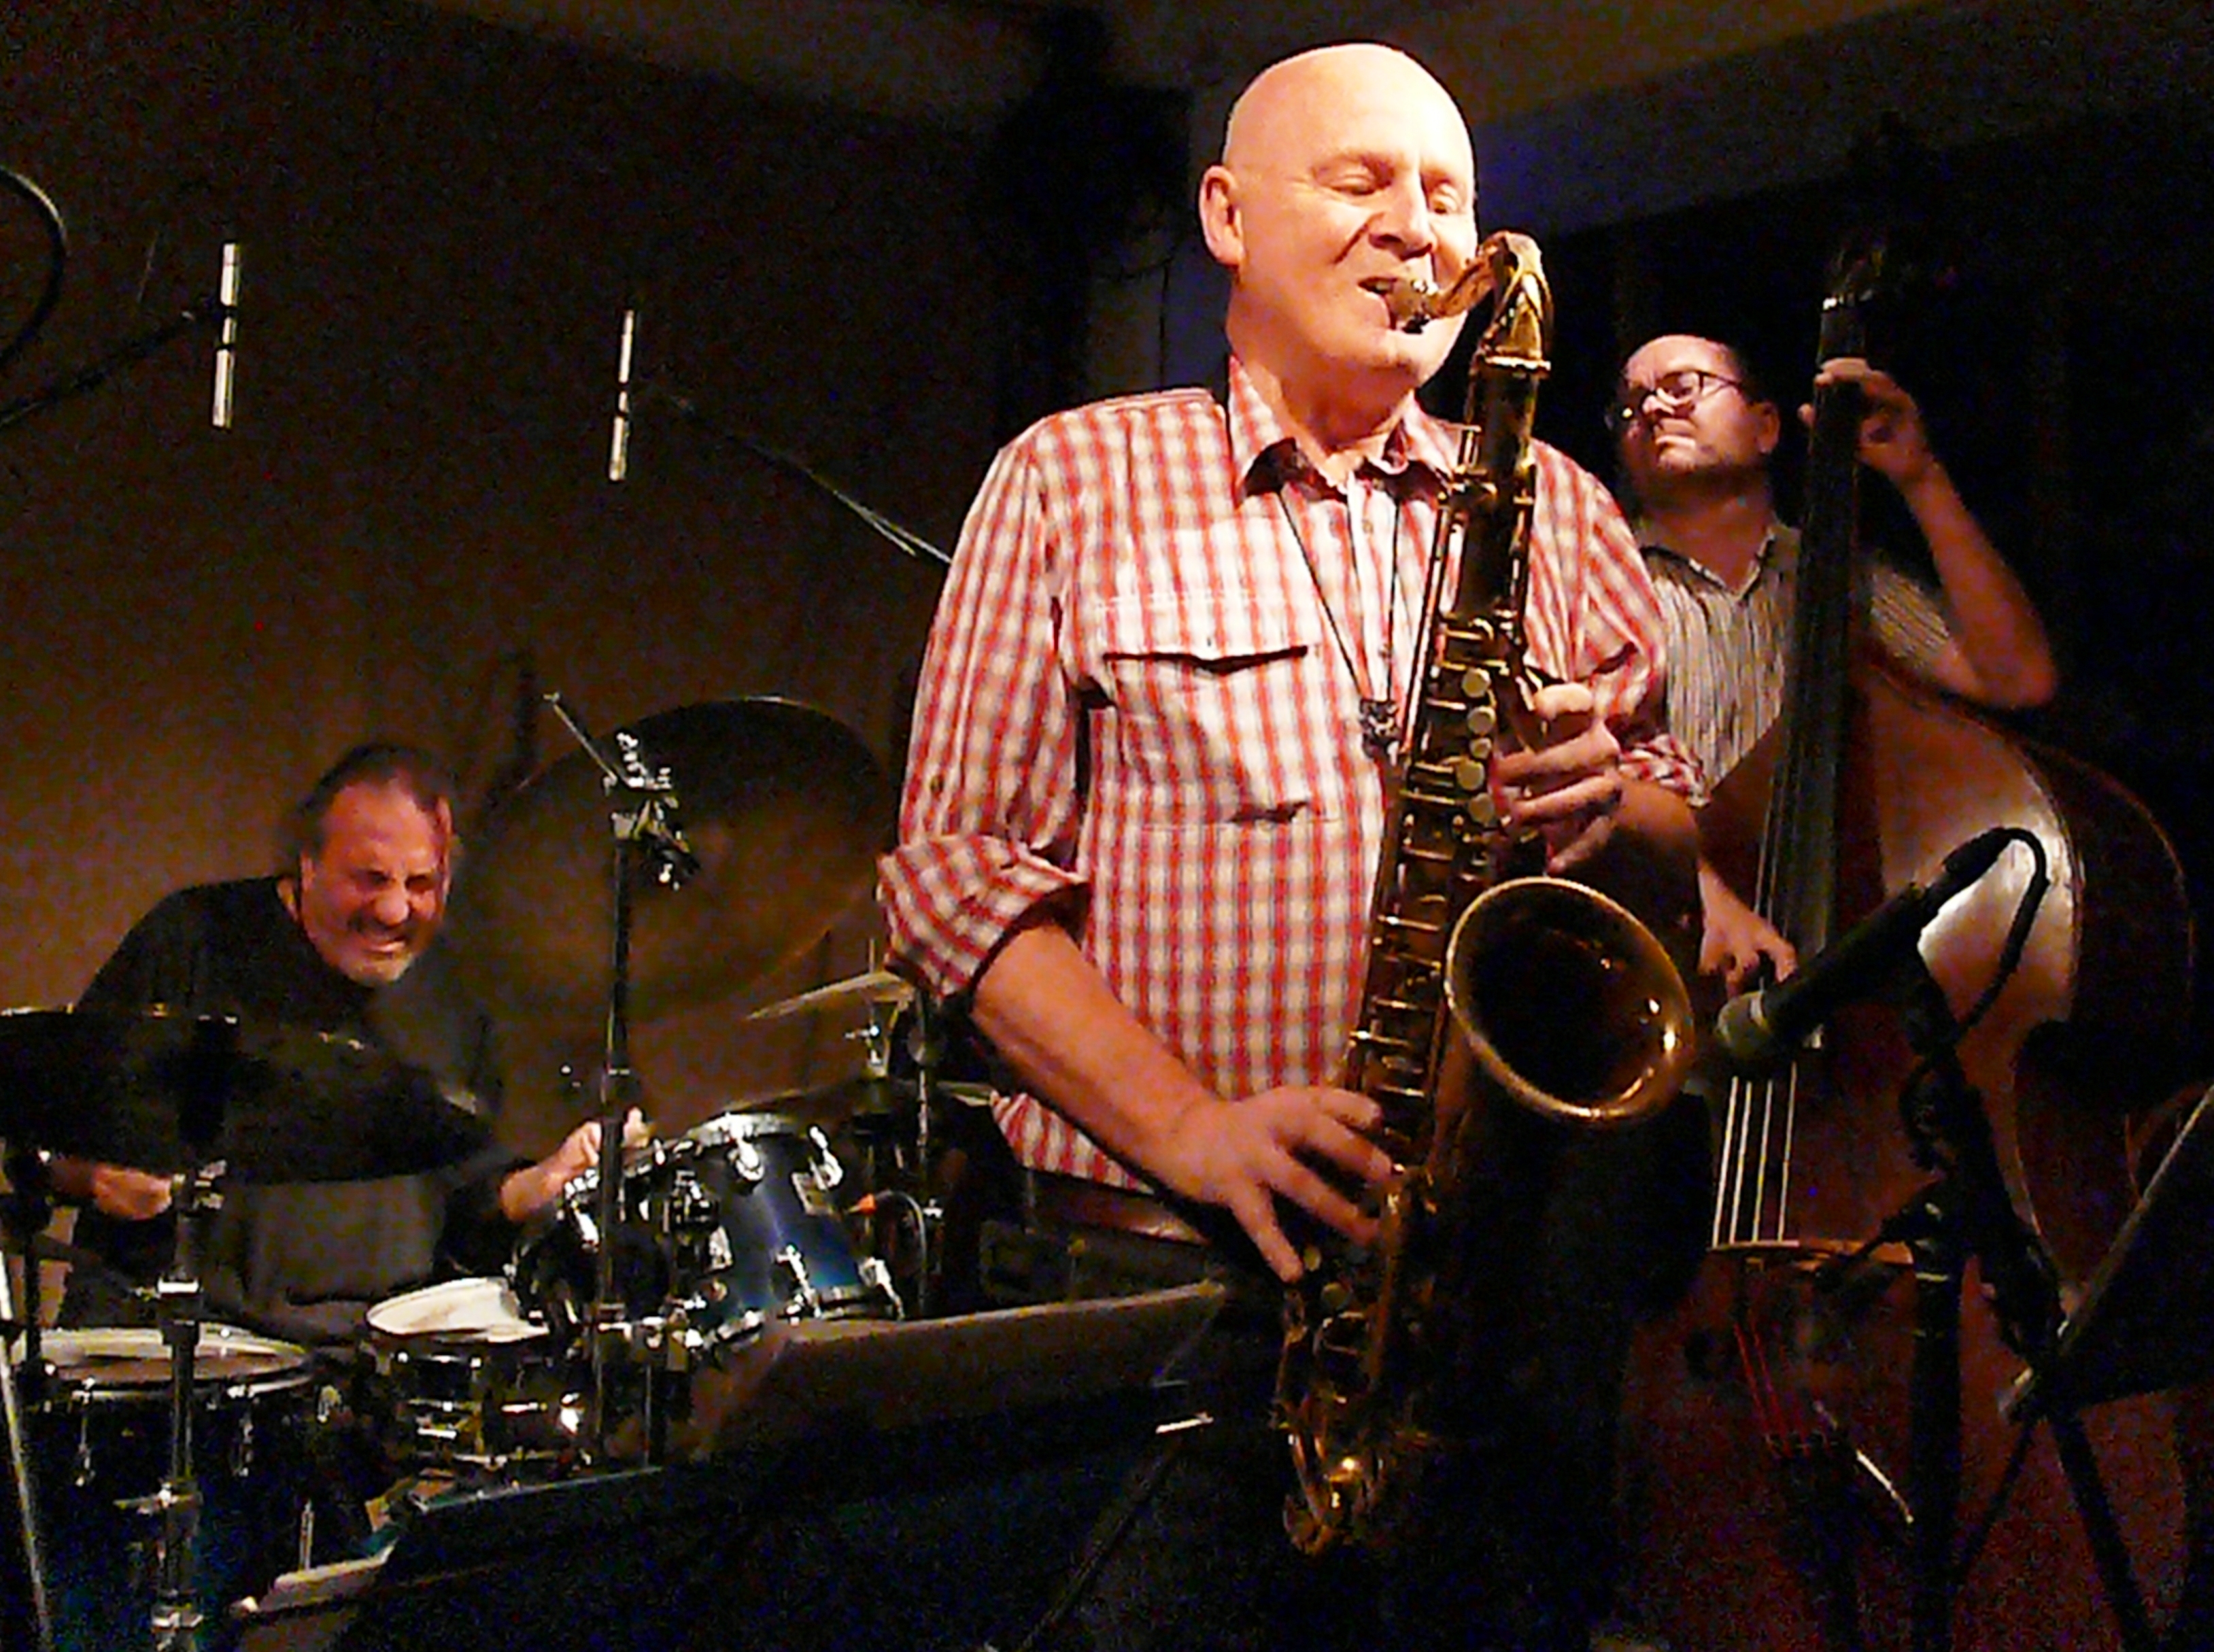 Tony Bianco, Howard Cottle and Olie Brice at Cafe Oto, London in July 2017